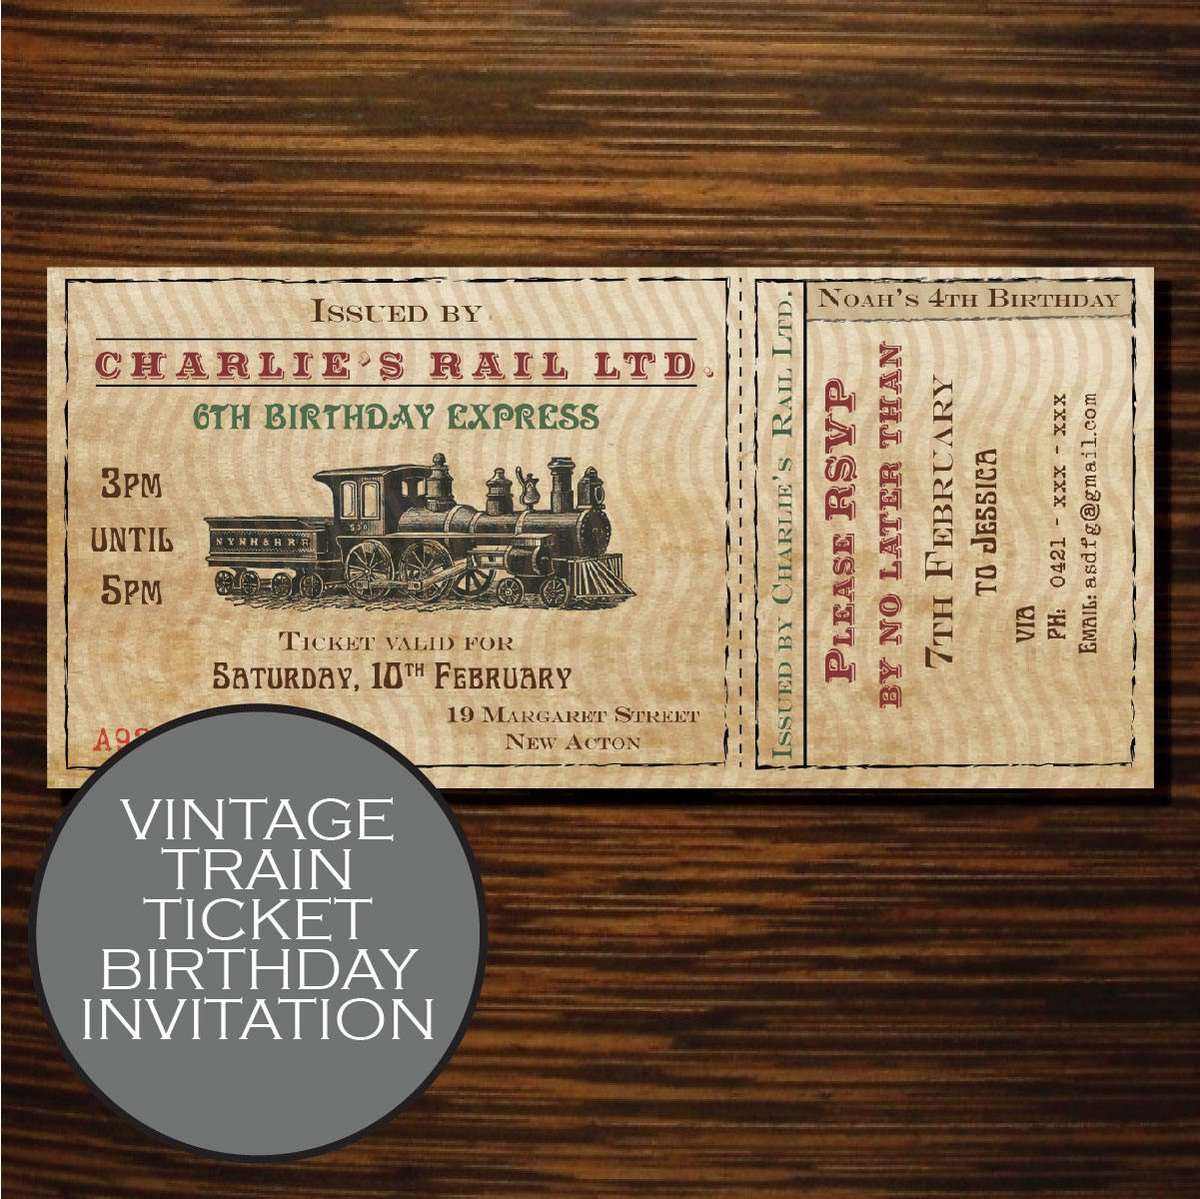 Hop A Vintage Train Ride To Their Next Birthday With This Invitation From My Etsy Shop Etsyme 2jsu2N8 Papergoods